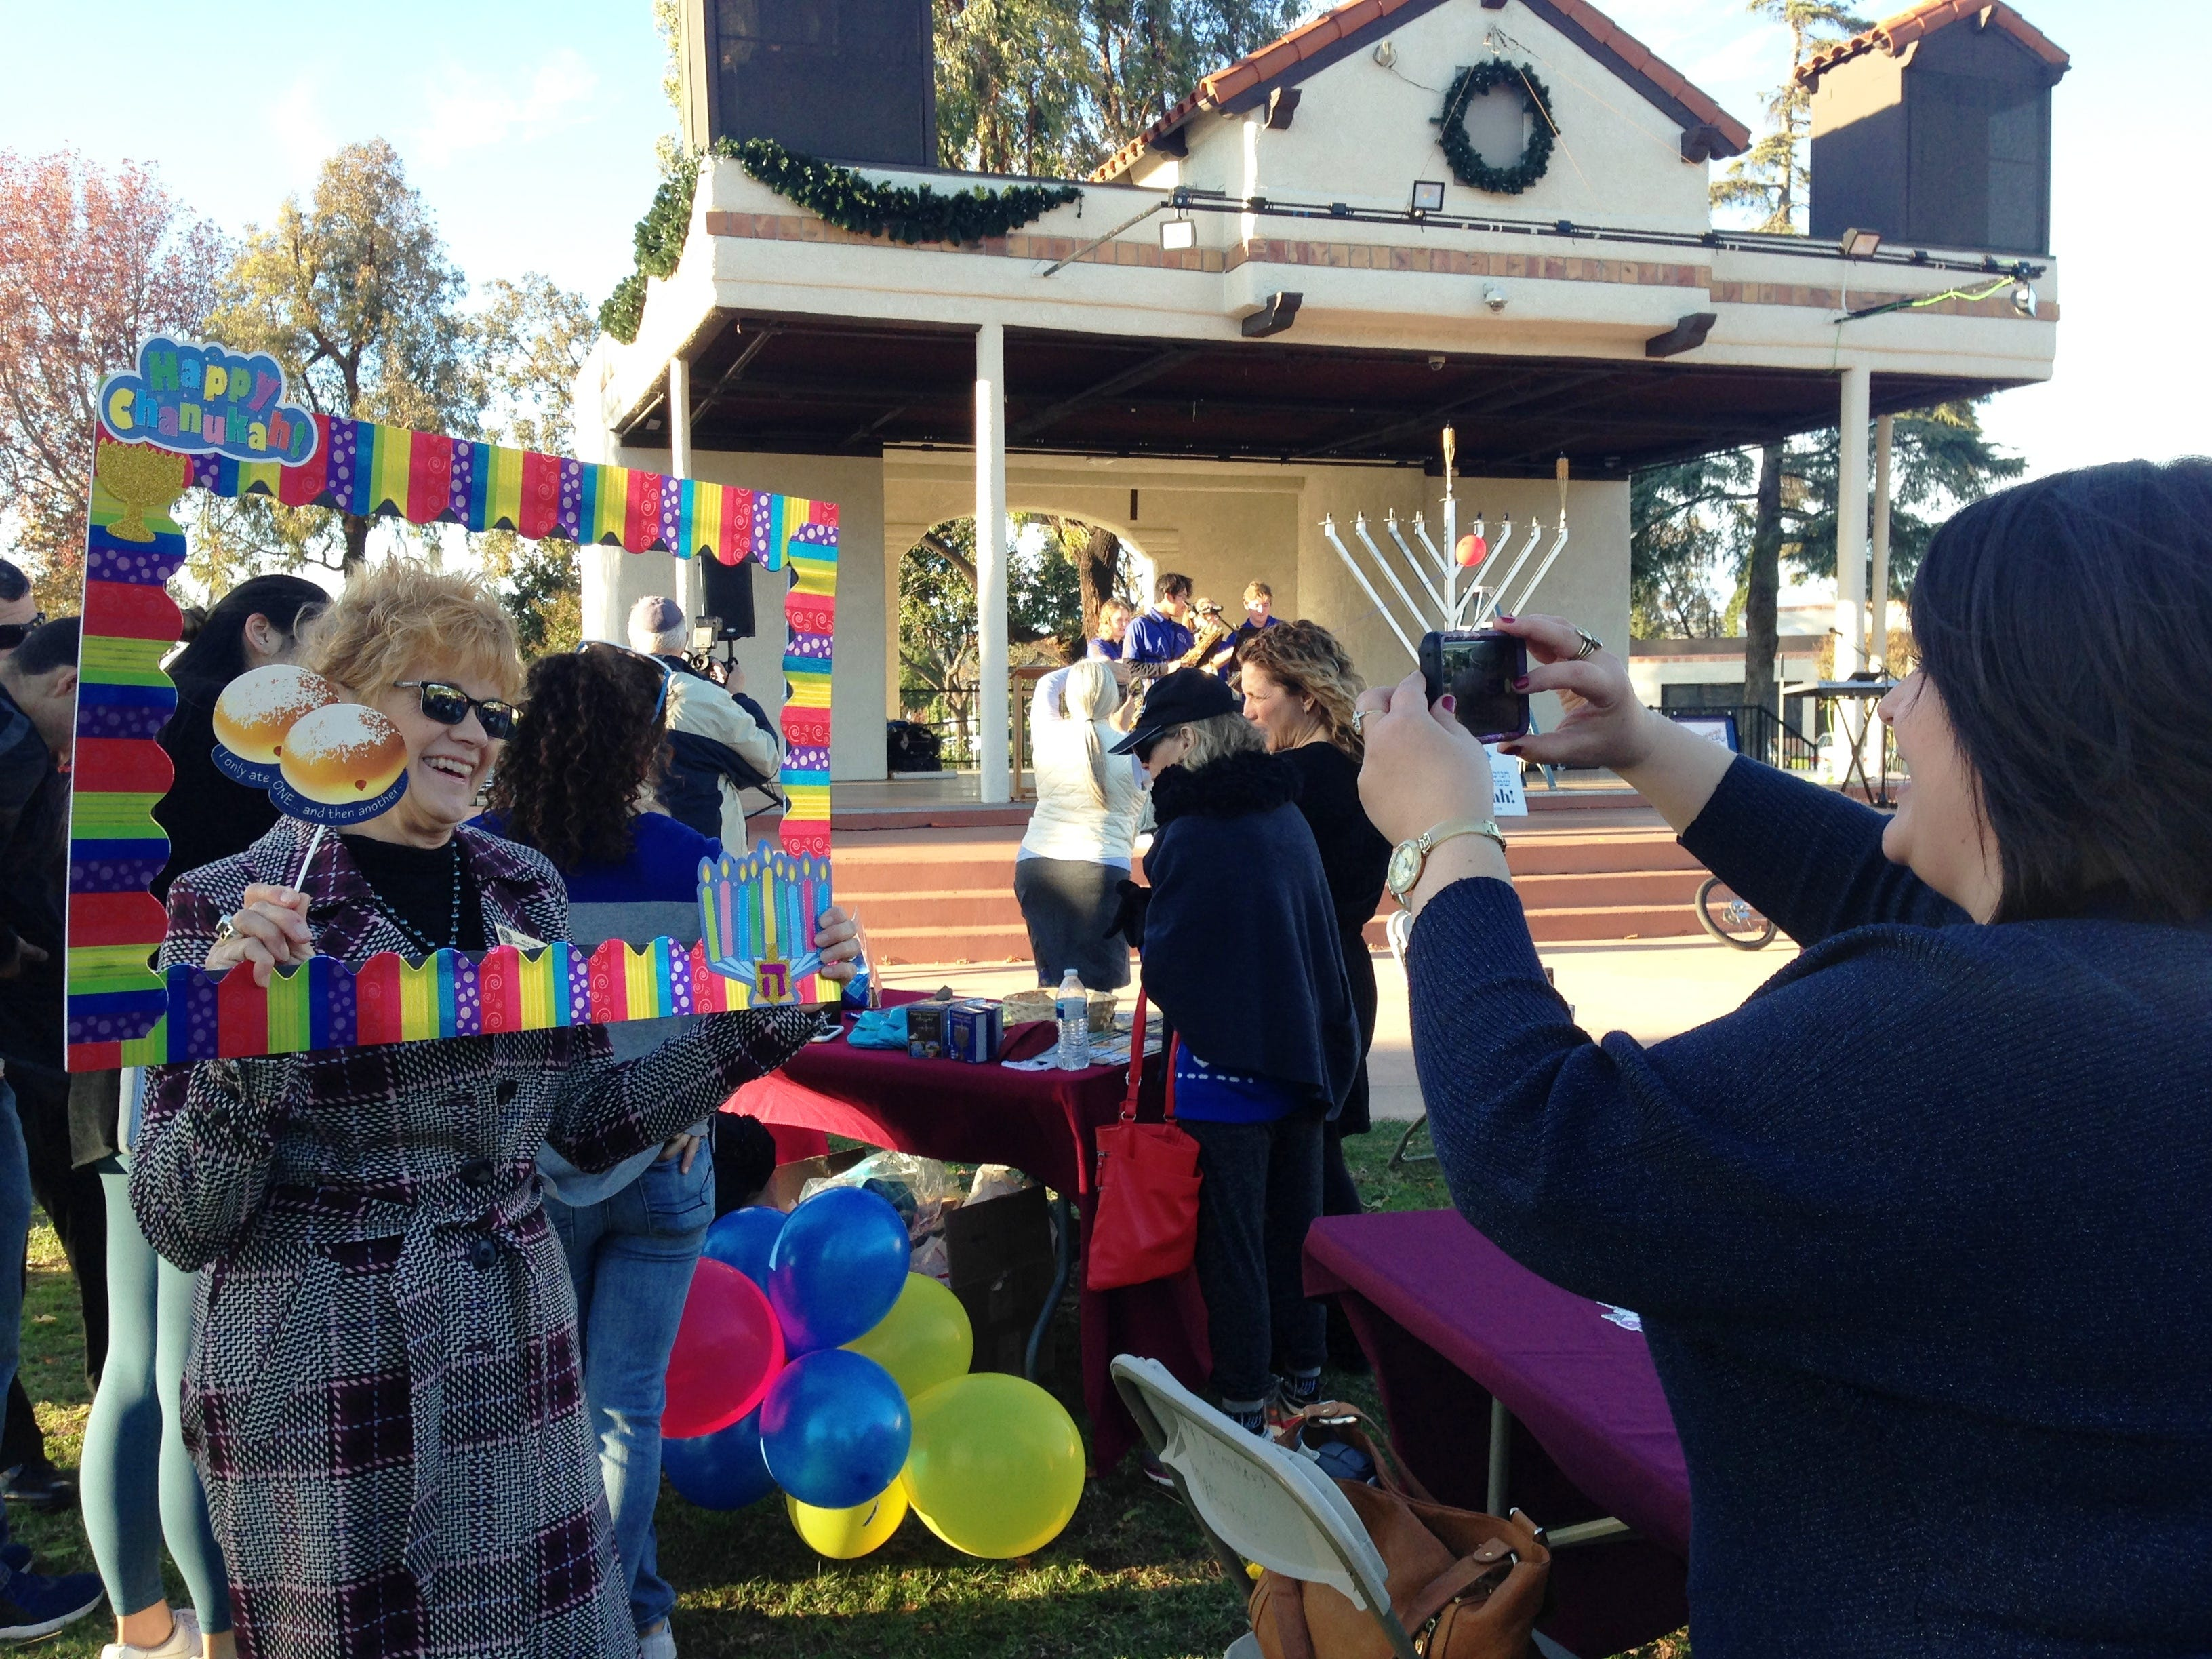 Nancy Lee Phillips, representing Ventura County Supervisor Kelly Long, poses for a photo being taken by Elina Hirman on Sunday at Chabad of Camarillo's 16th annual Hanukkah Festival and Grand Menorah Lighting in Constitution Park in Camarillo.